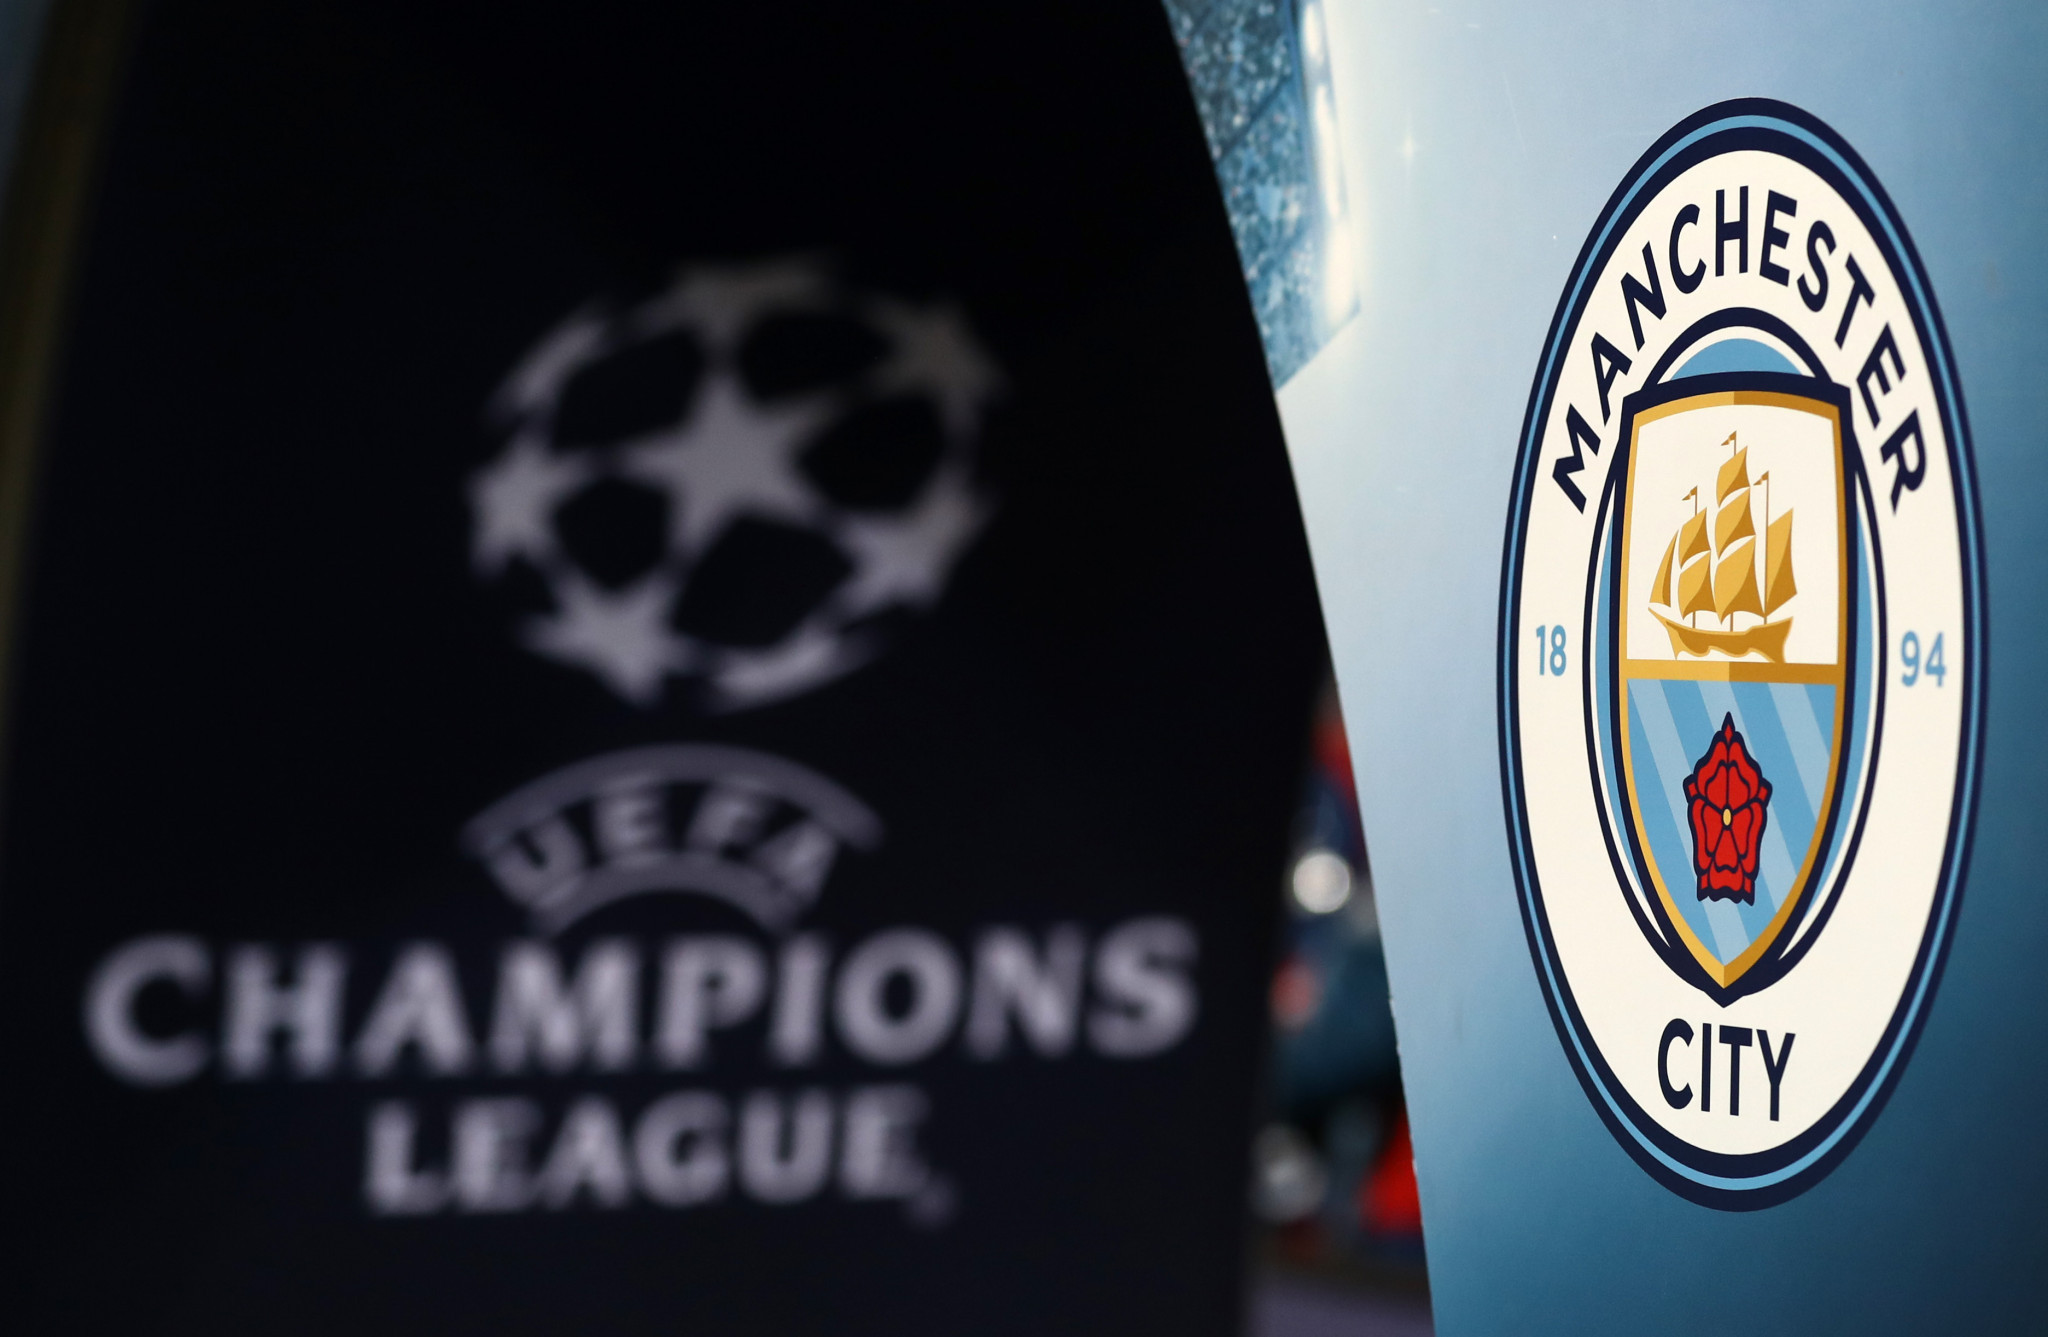 Manchester City successfully overturned a two-season ban from the UEFA Champions League ©Getty Images